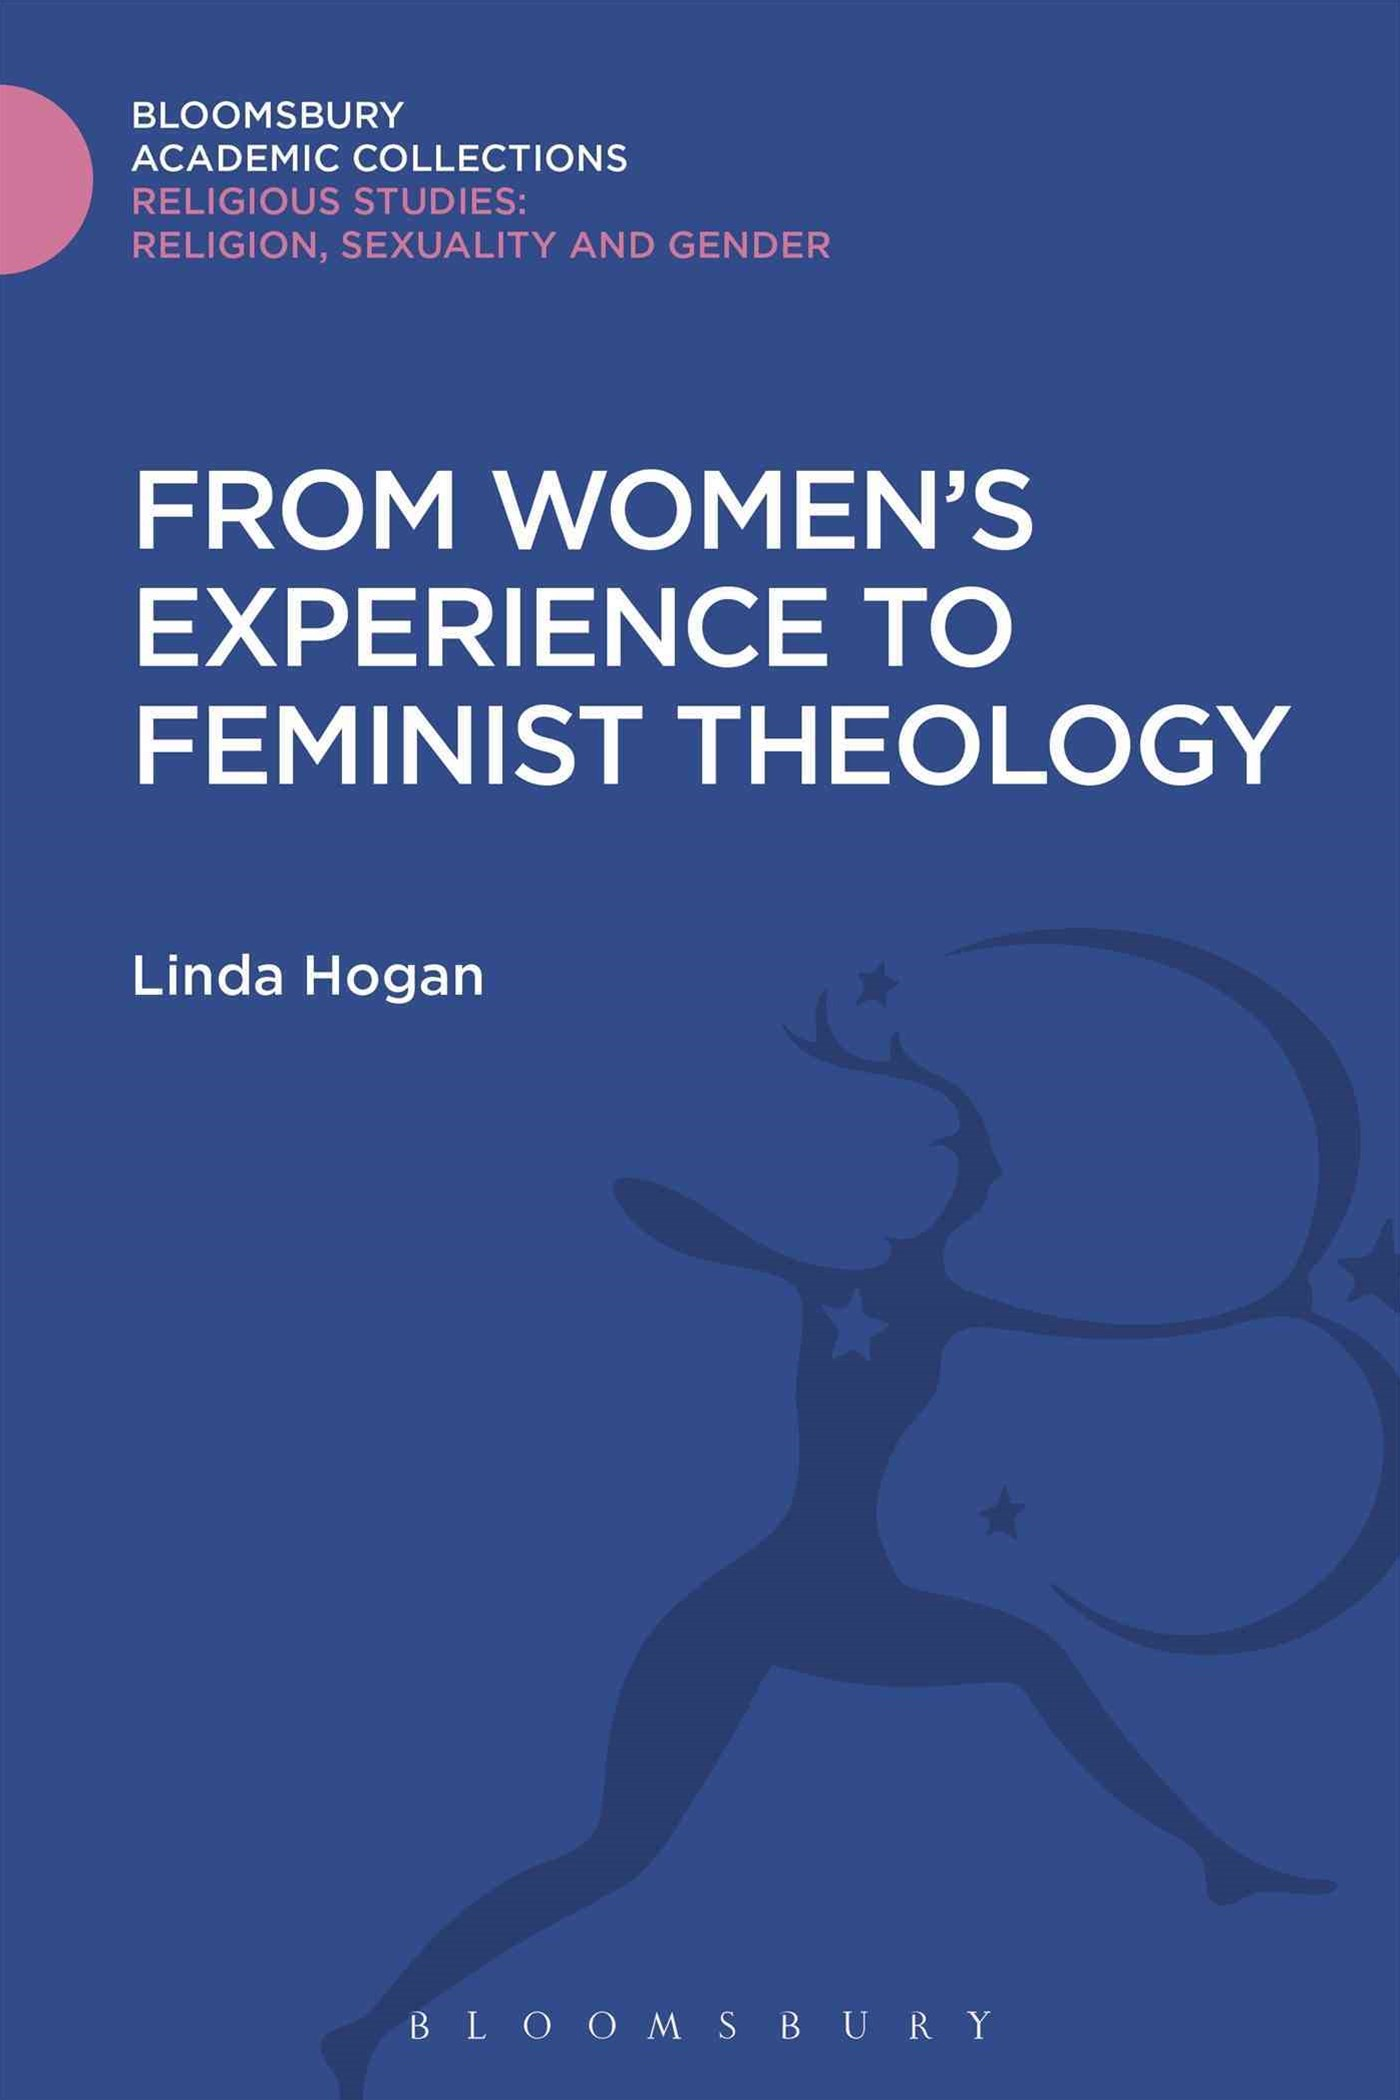 From Women's Experience to Feminist Theology